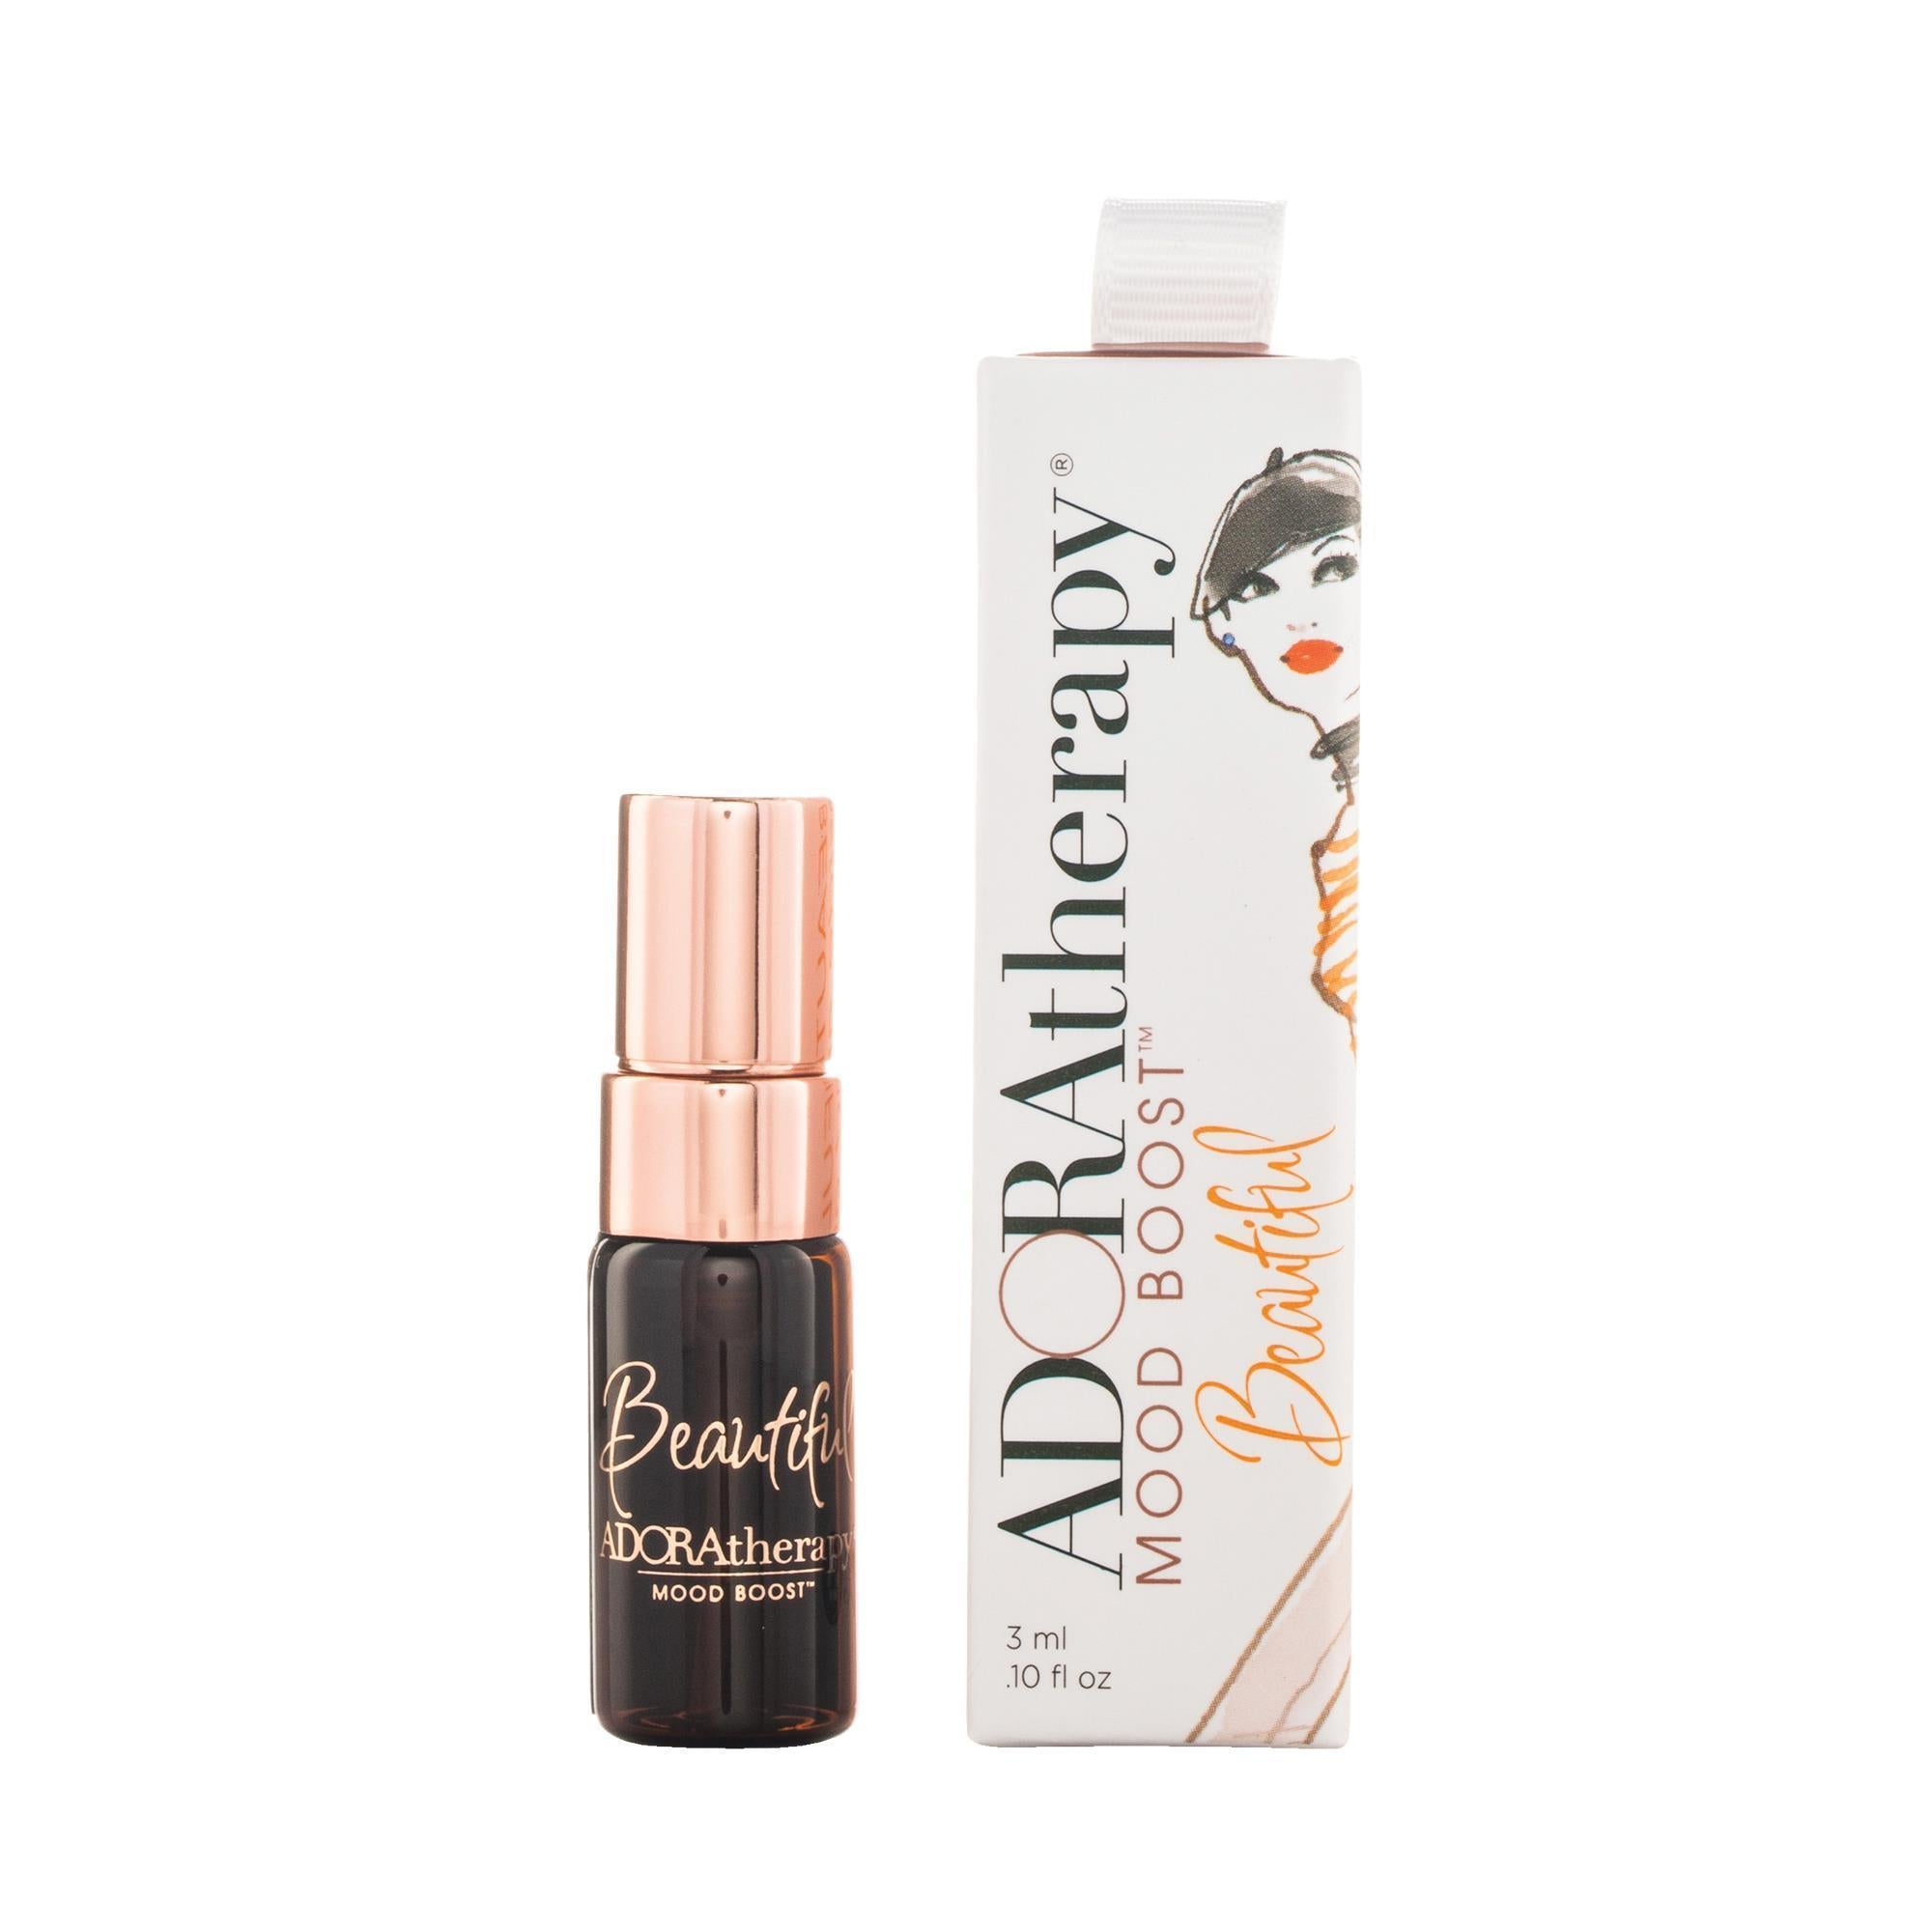 Fragrance 3 ml ADORAtherapy Beautiful Gal on the Go Mood Boost